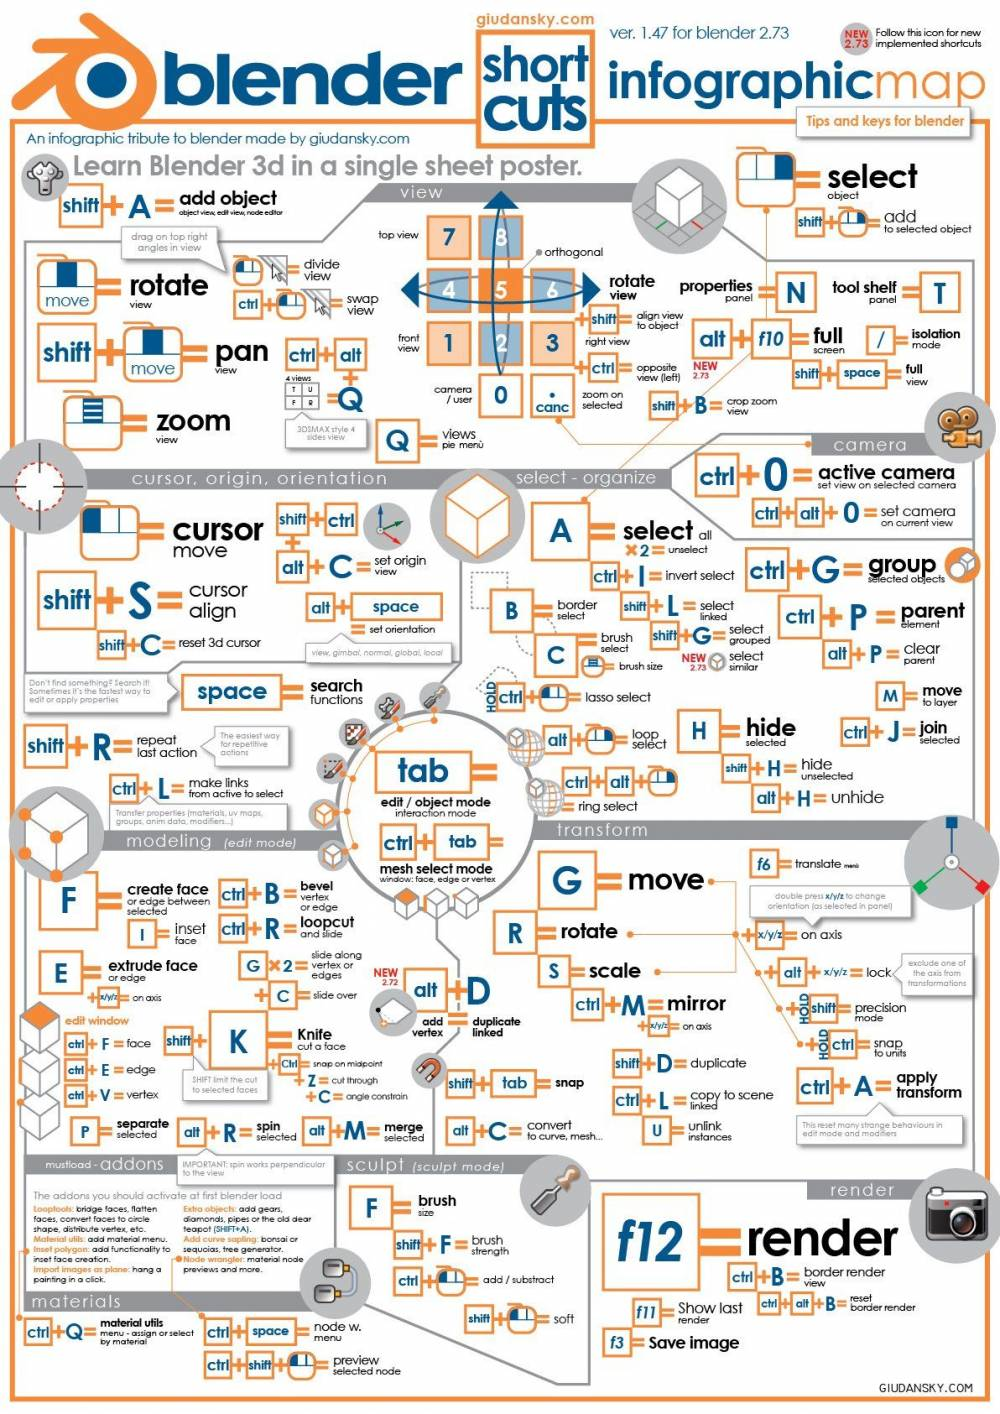 blender_shortcuts_infographic.jpg